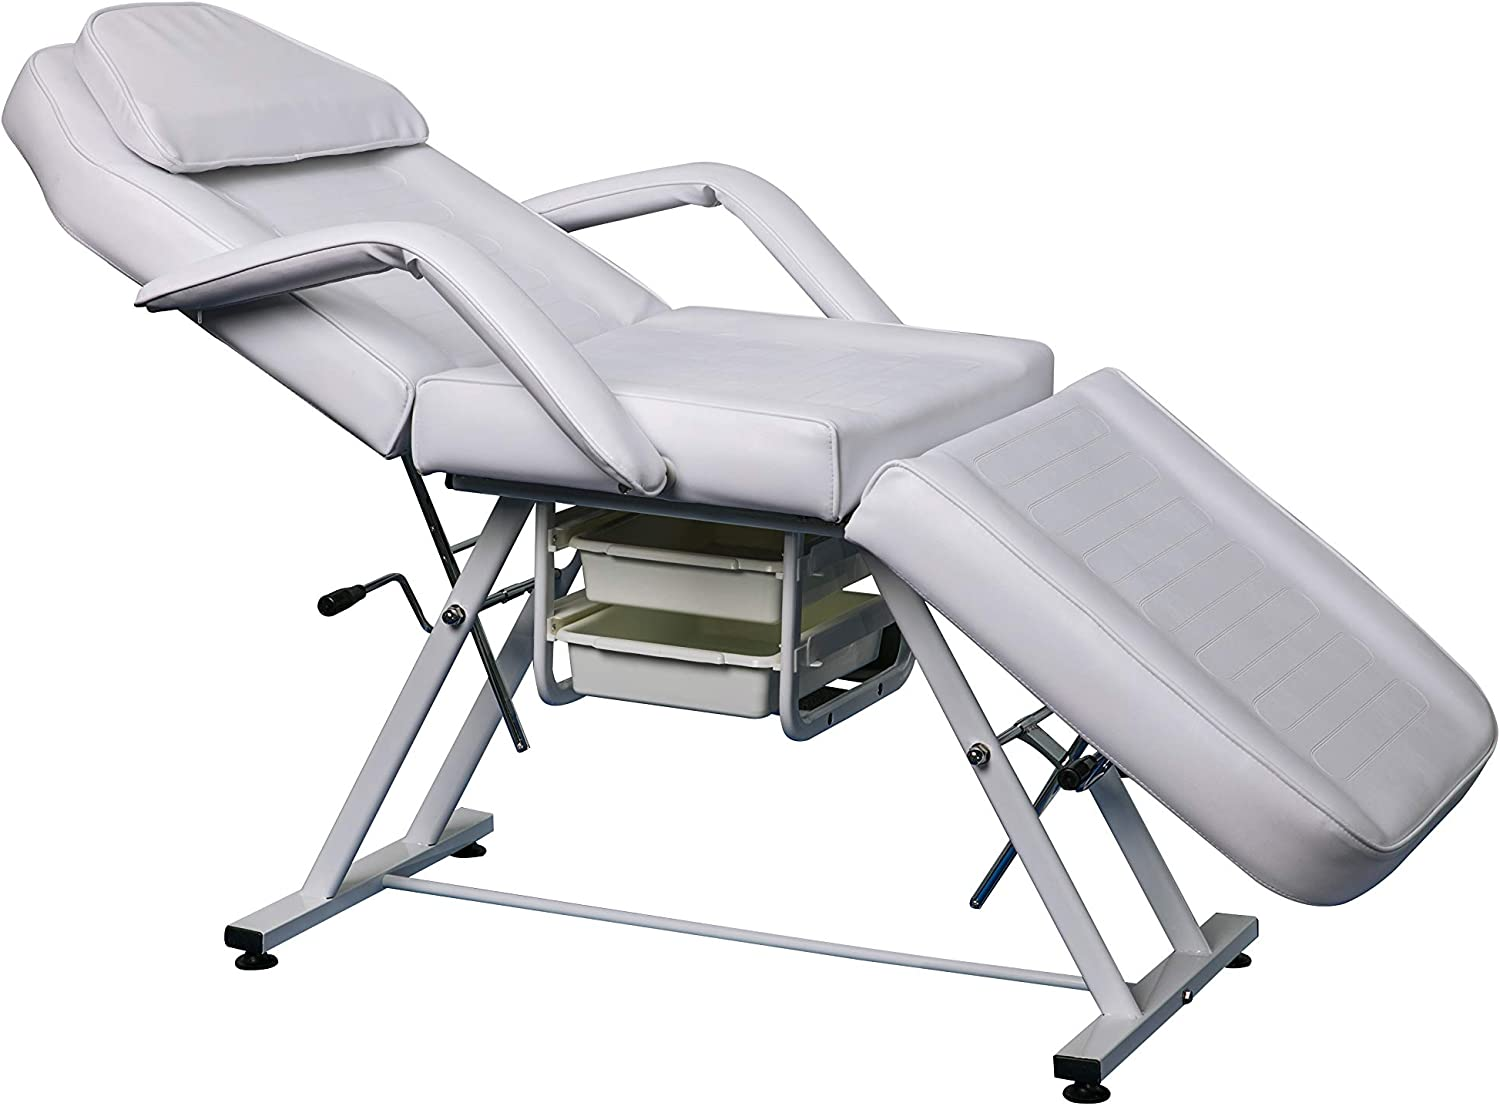 Adjustable Salon SPA Massage Bed Tattoo Chair Facial Eyelash Extension  Table With 5 Drawers (White)